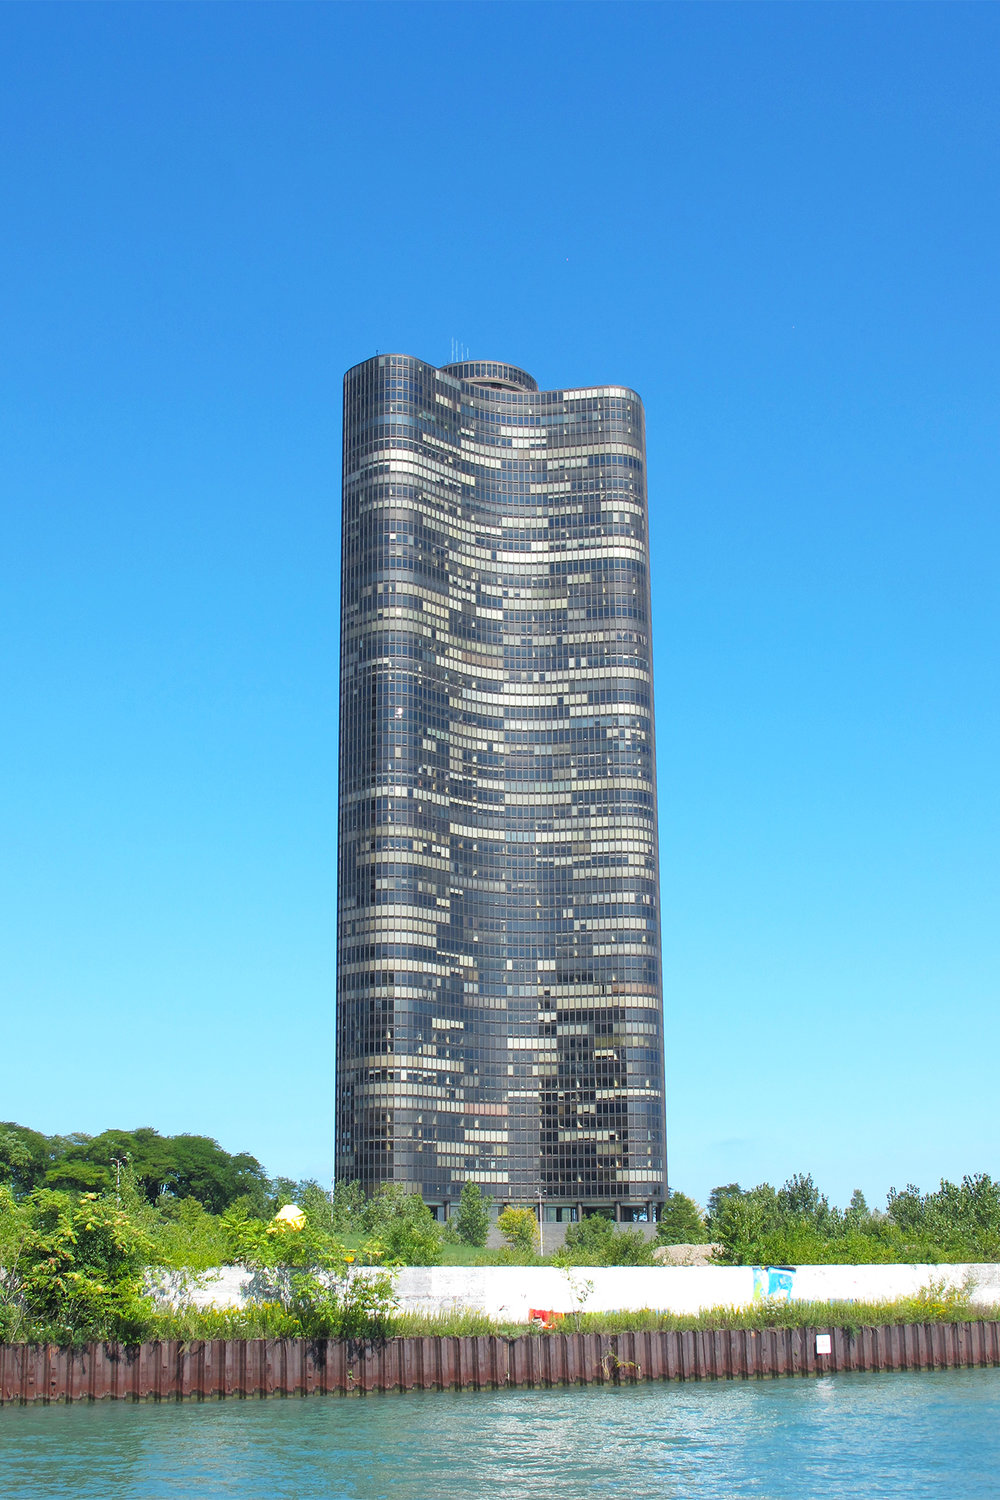 Lake Point Tower, 1968, Architects: John Heinrich and George Schipporeit, students of Mies van der Rohe